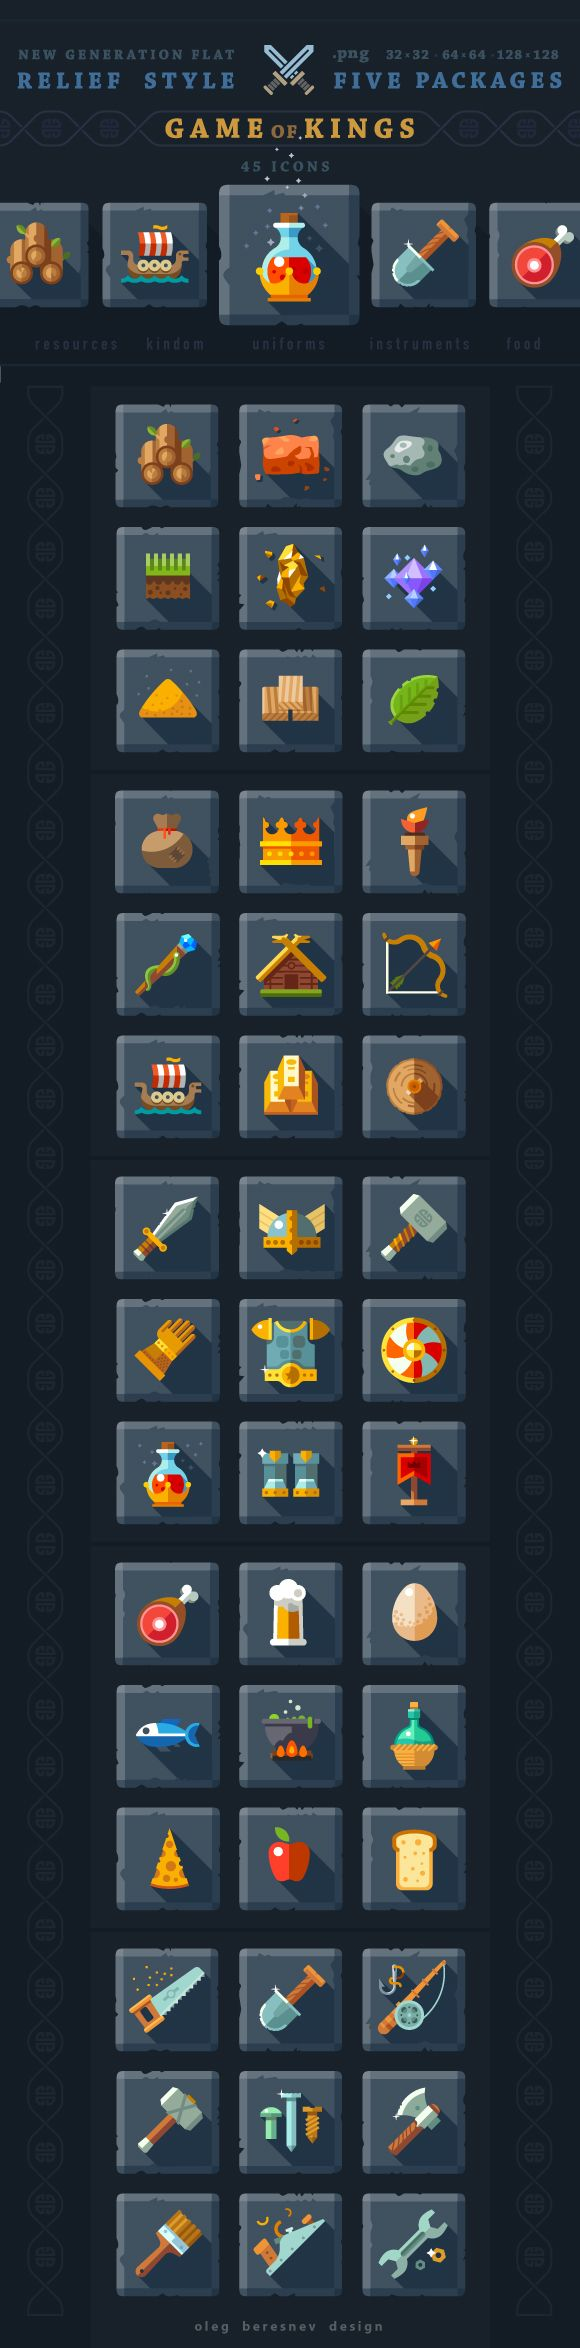 From the game Game of Kings. All these icons are relatively easy to recognise and can be easily slotted into a game's screen.